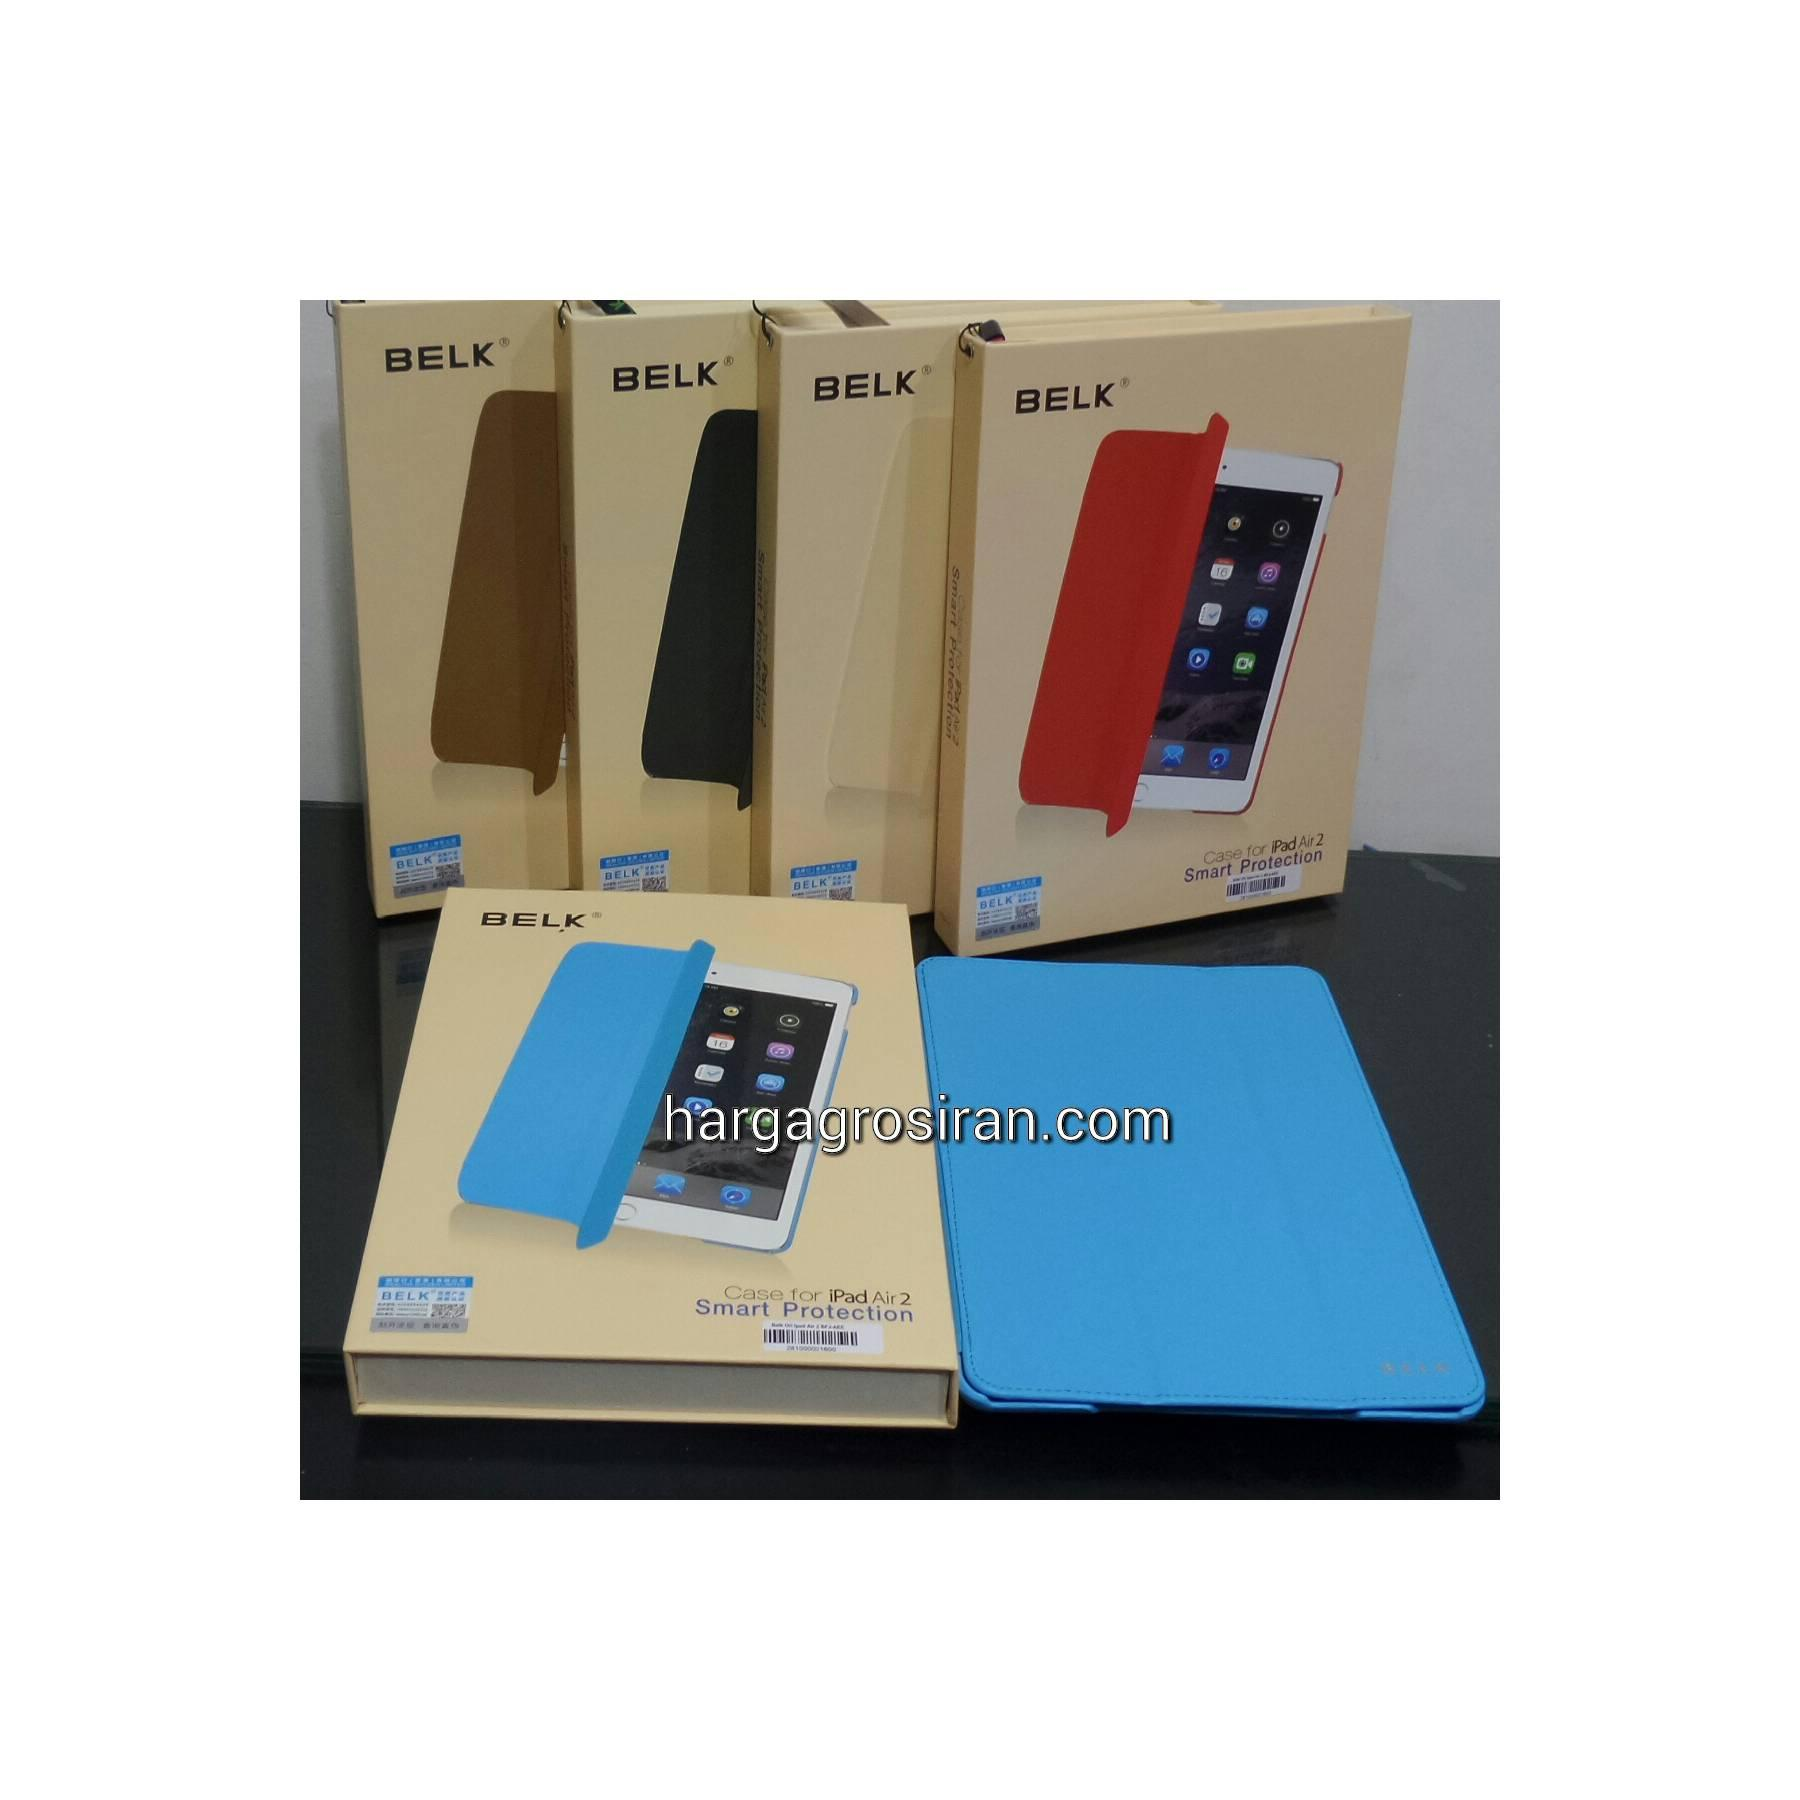 Sarung Belk Original New Ipad Air 2